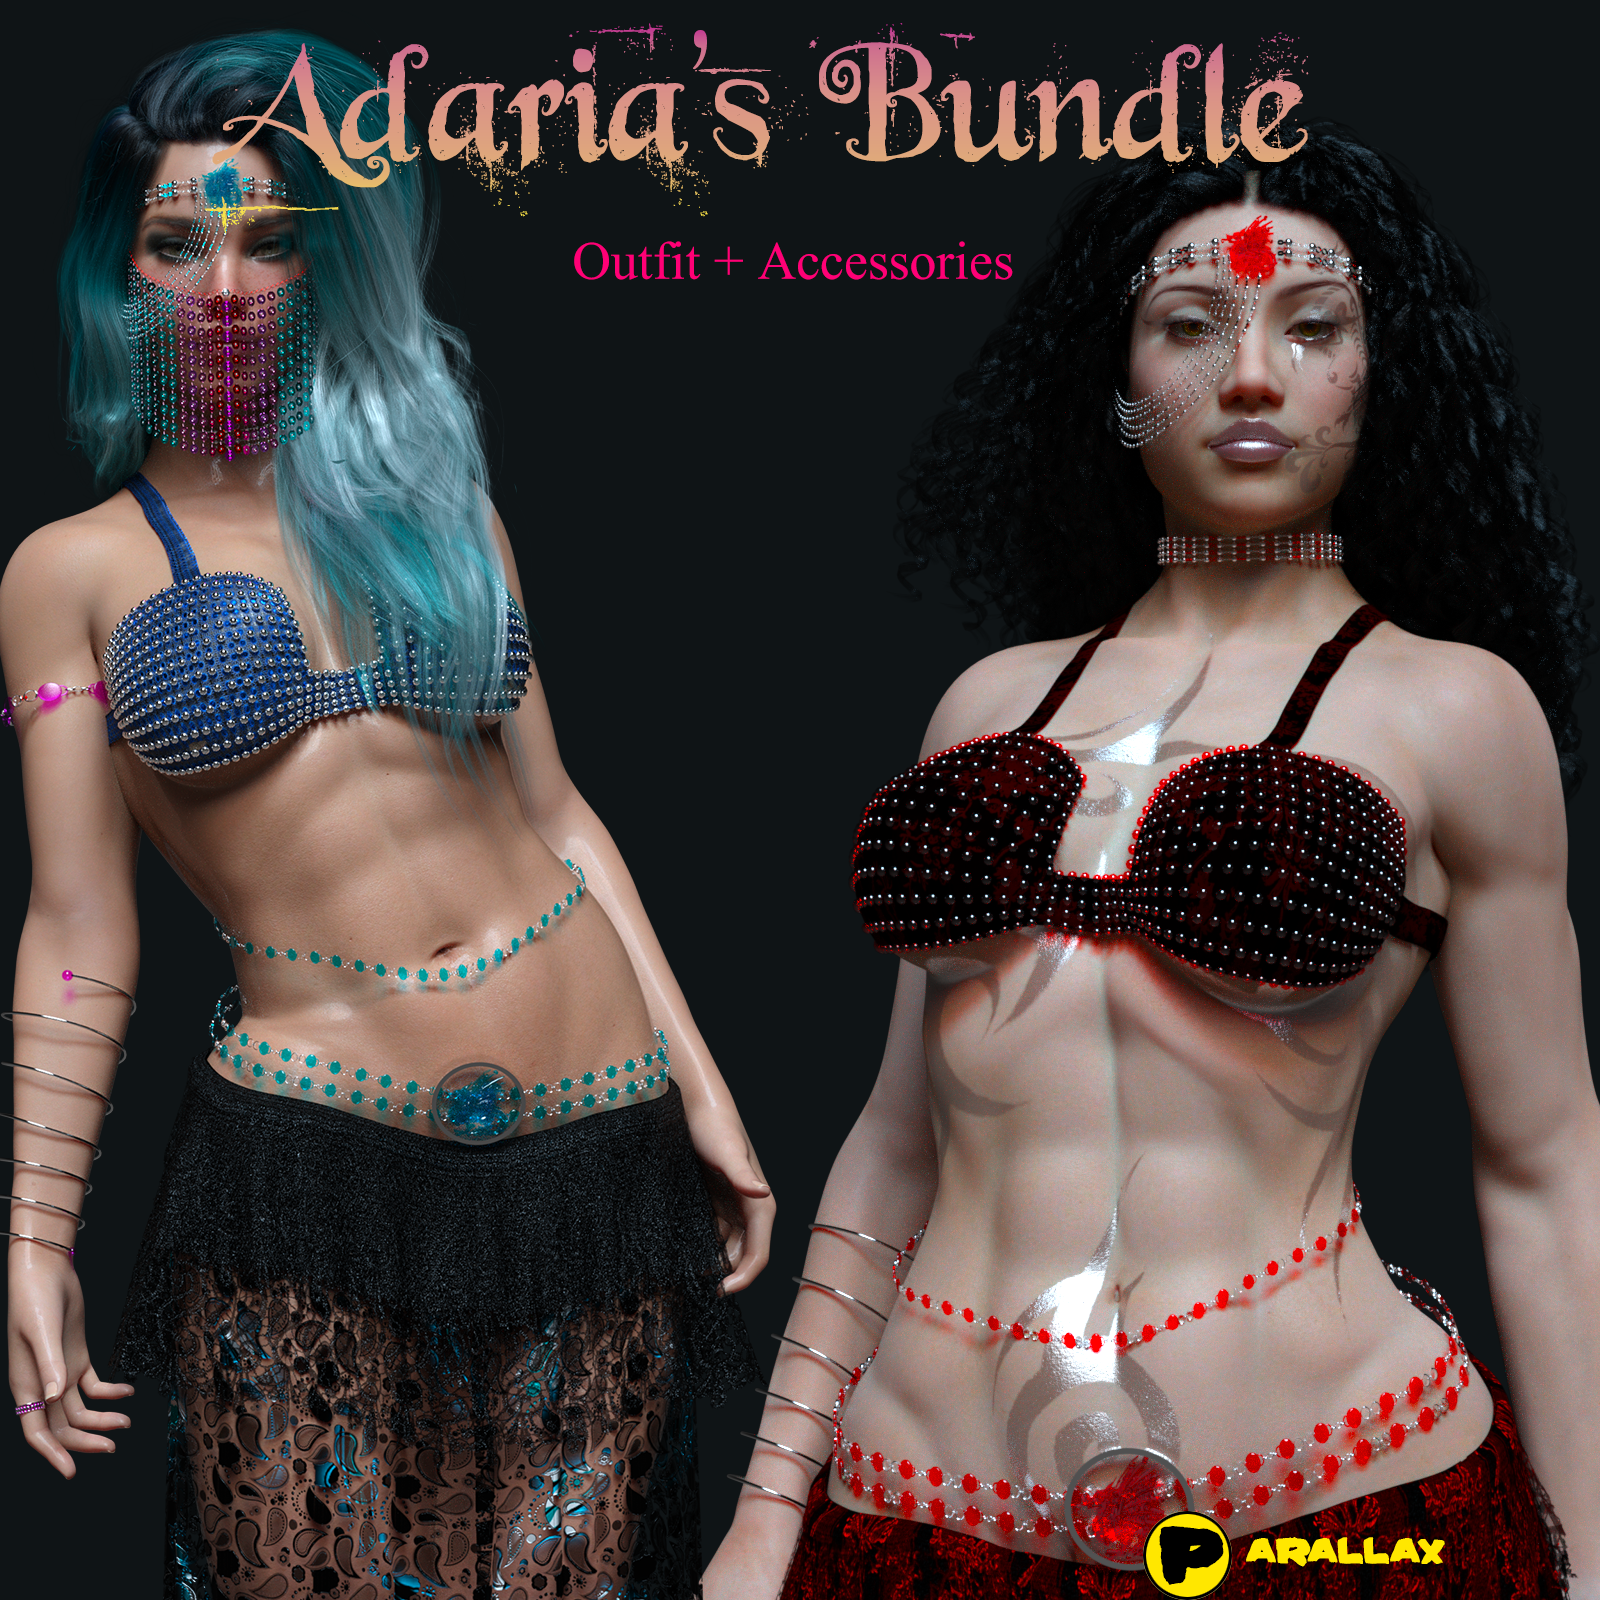 The Adaria Bundle